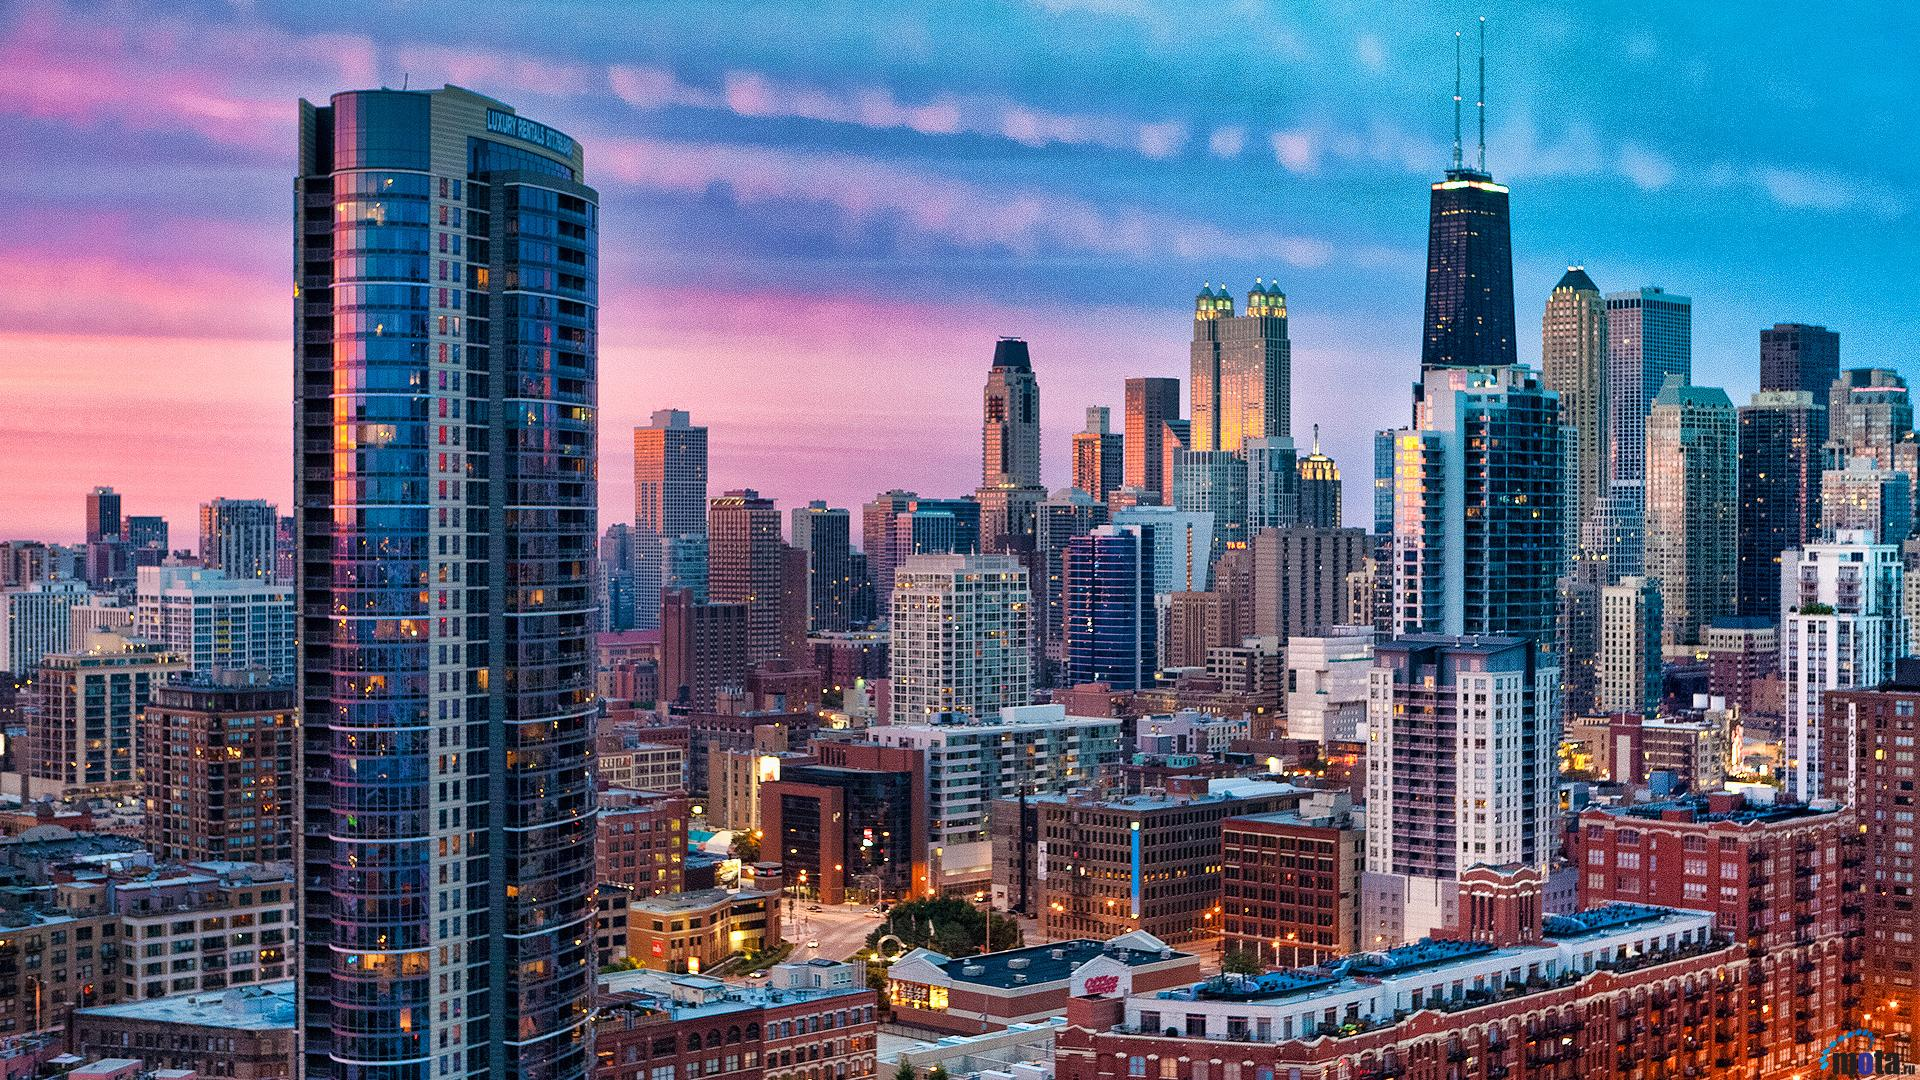 Download Wallpaper Dawn in Chicago Illinois 1920 x 1080 1920x1080